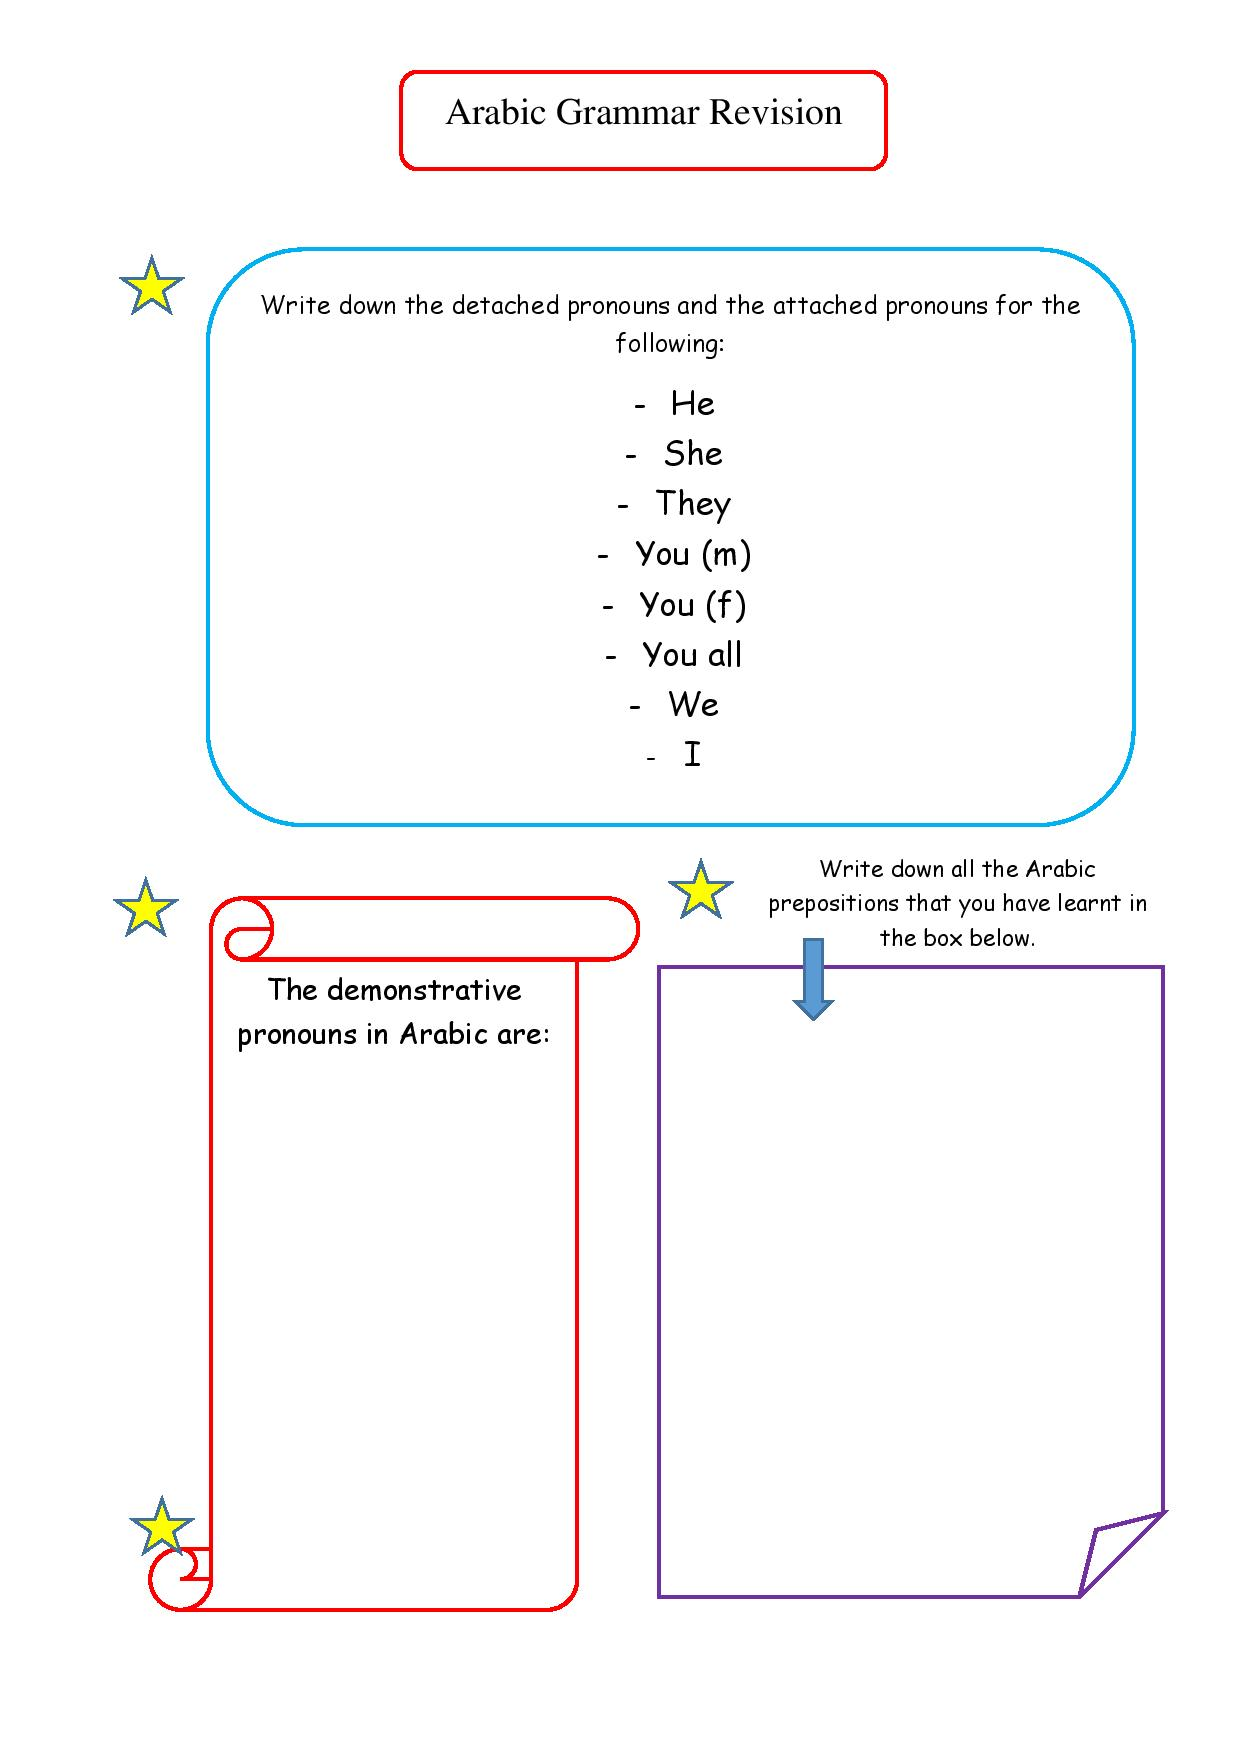 worksheet Grammar Review Worksheets arabic grammar review adventures page 4 worksheet 001